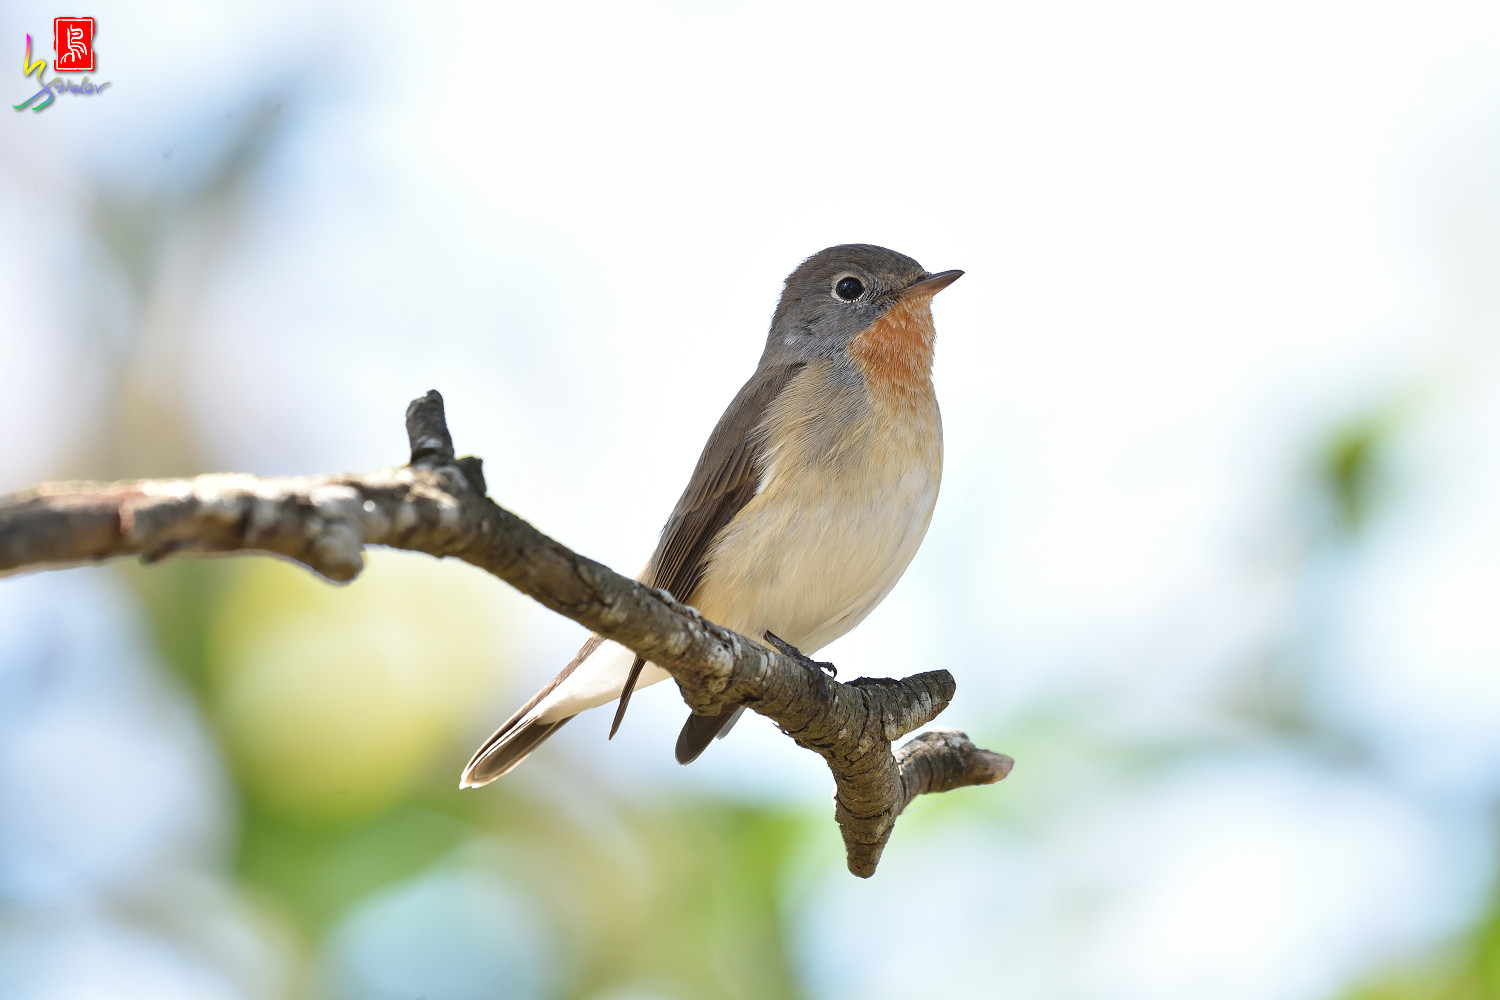 Red-breasted_Flycatcher_6210